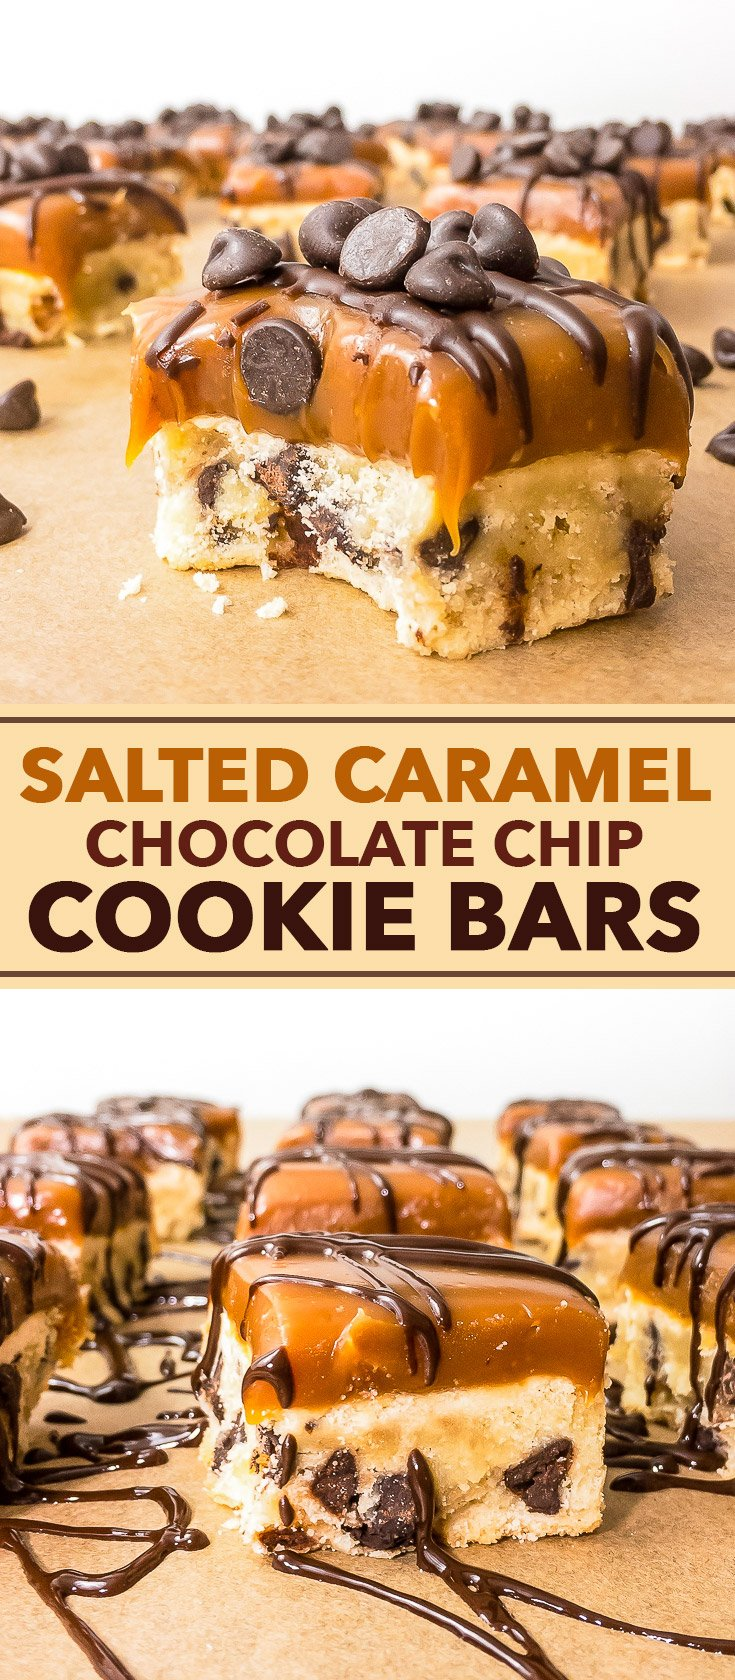 Salted Caramel Chocolate Chip Cookie Bars - The Loopy Whisk